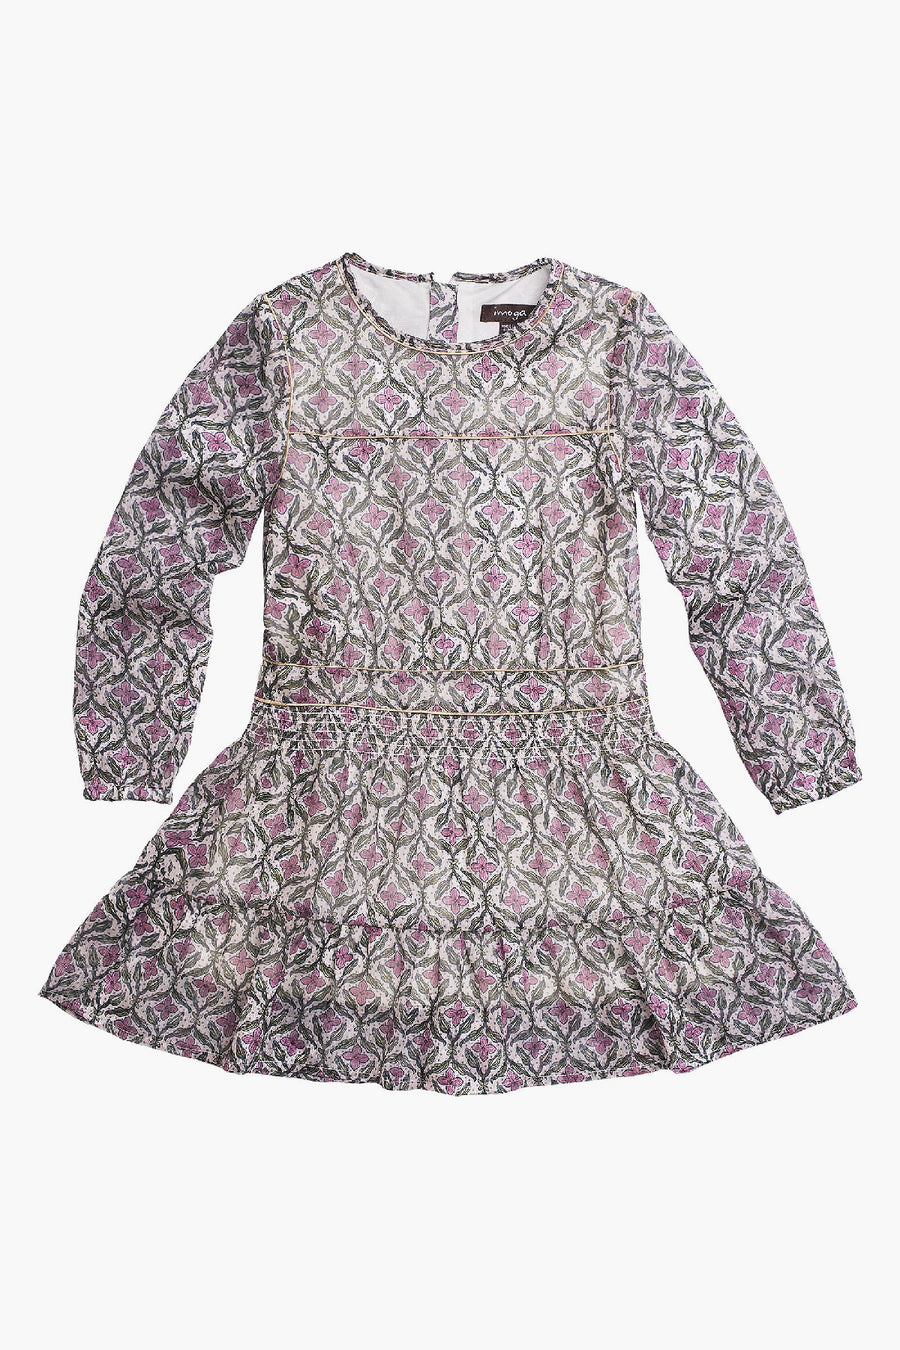 Imoga Sylvie Girls Dress - Clover